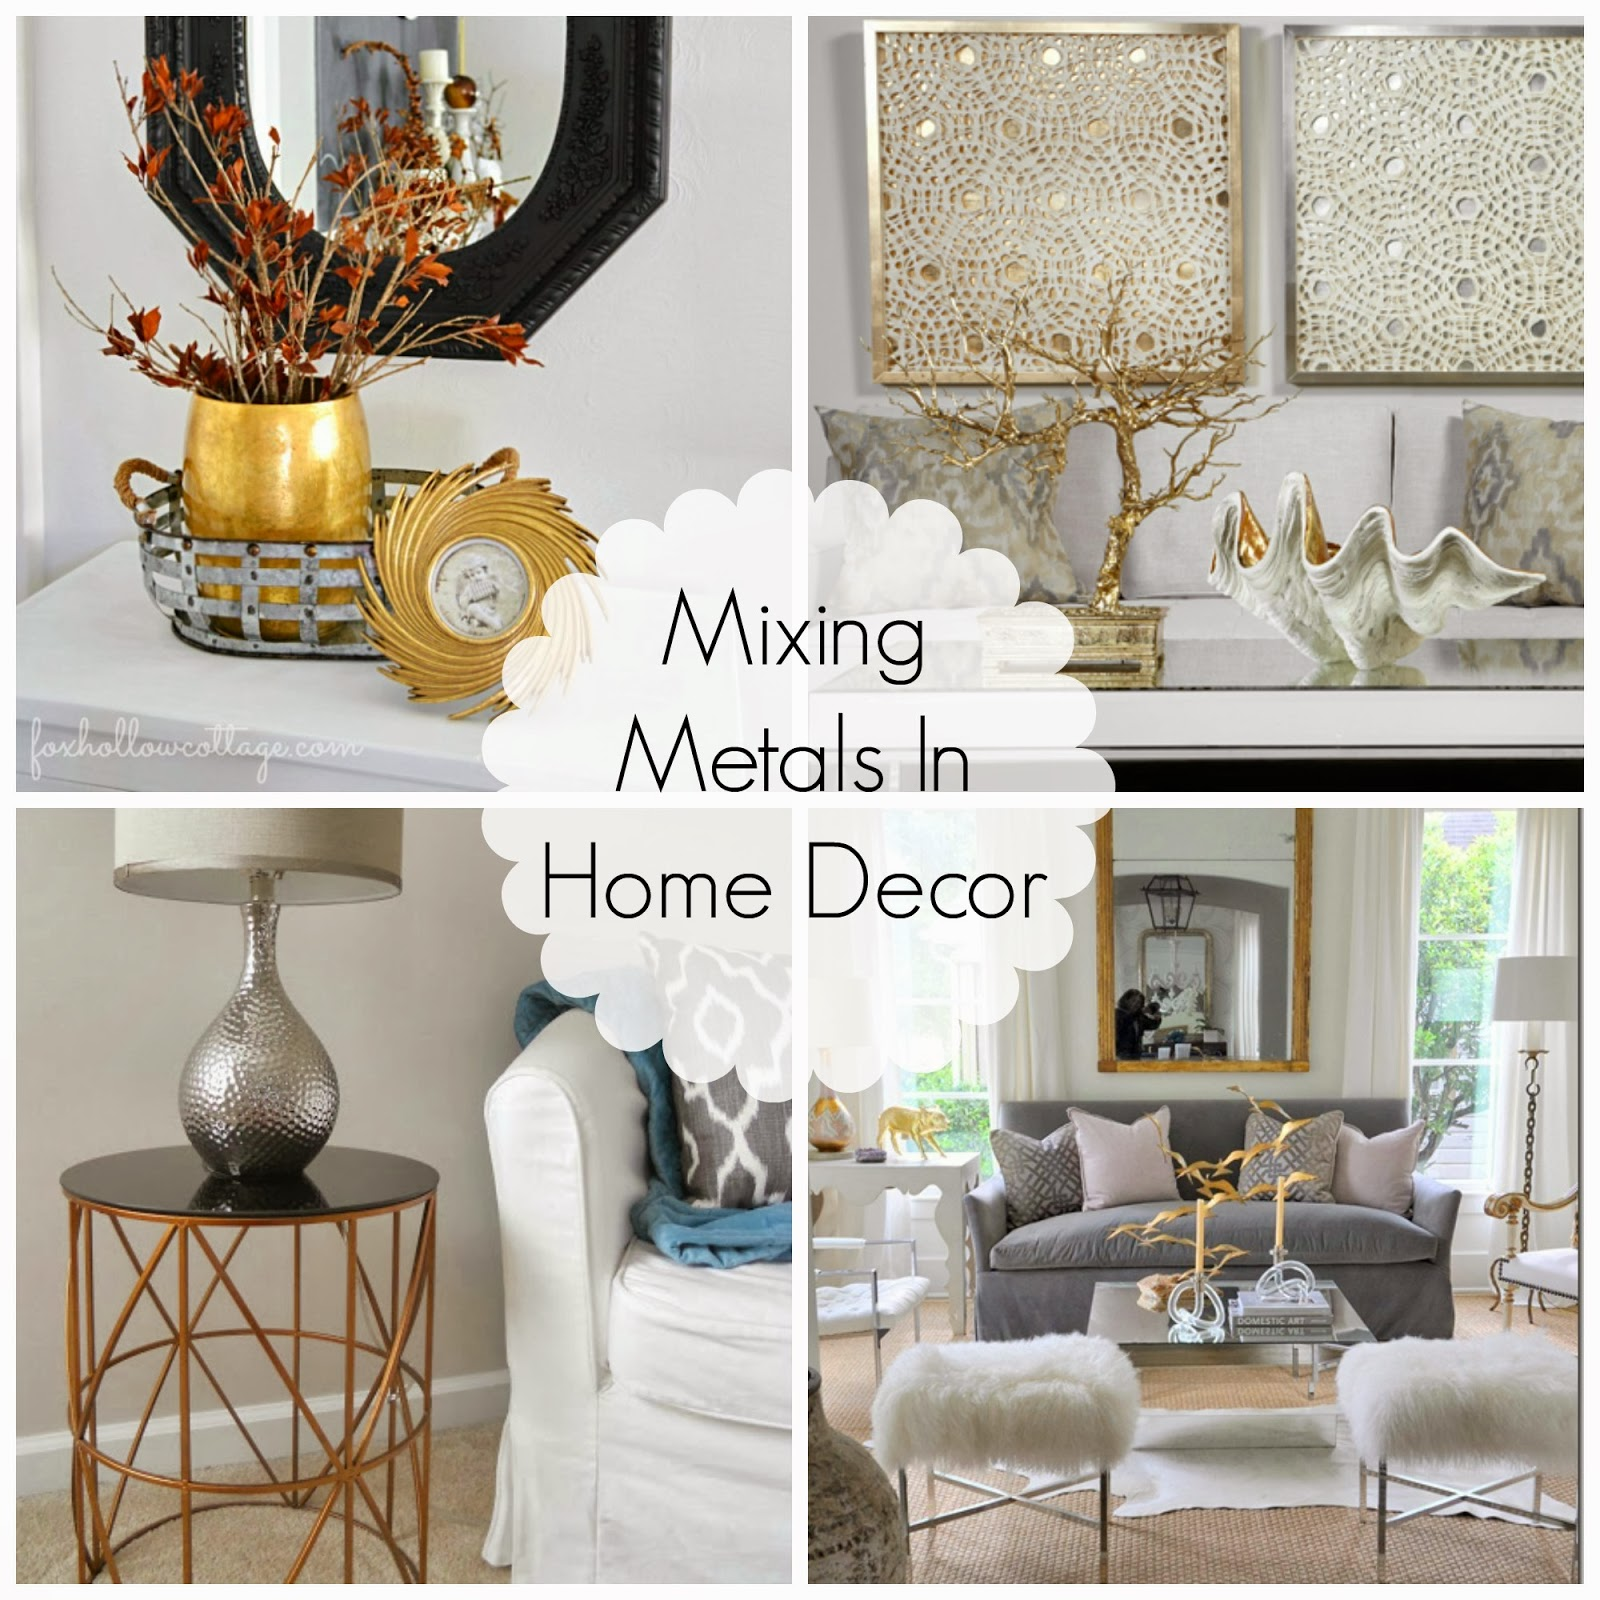 Decorating cents mixing metals in home decor - Home decor picture ...